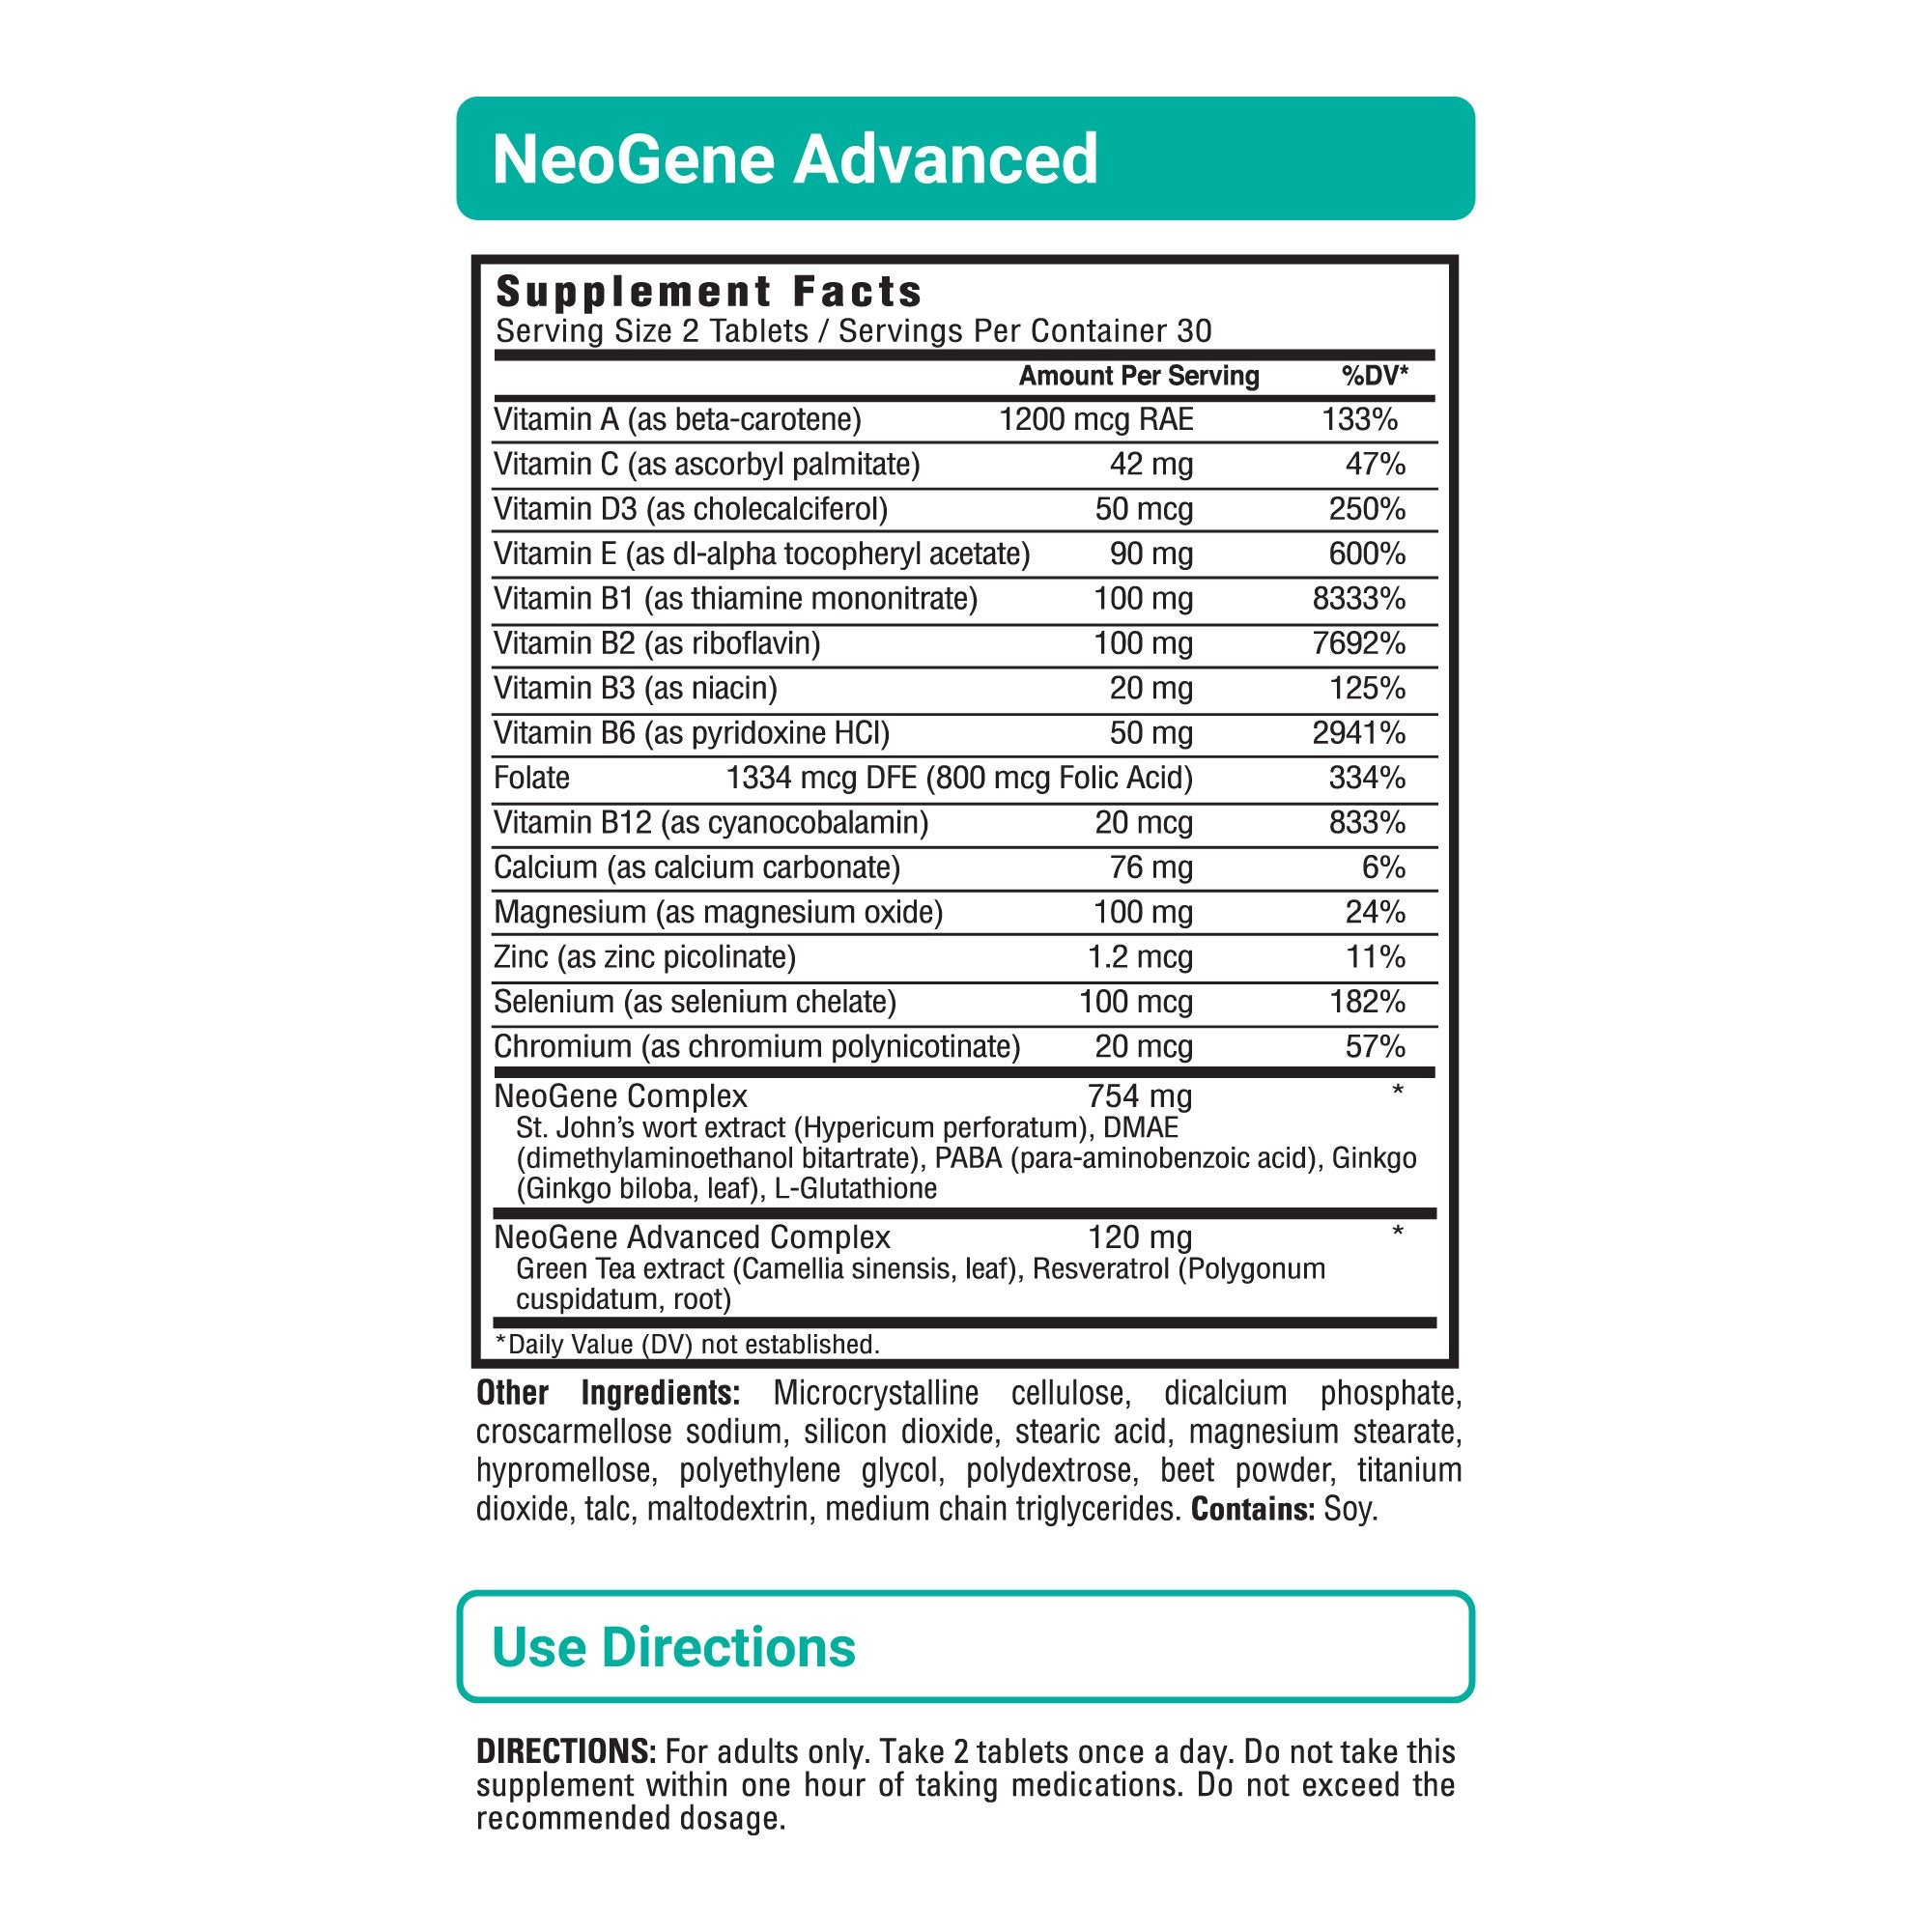 NeoGene Advanced sup facts